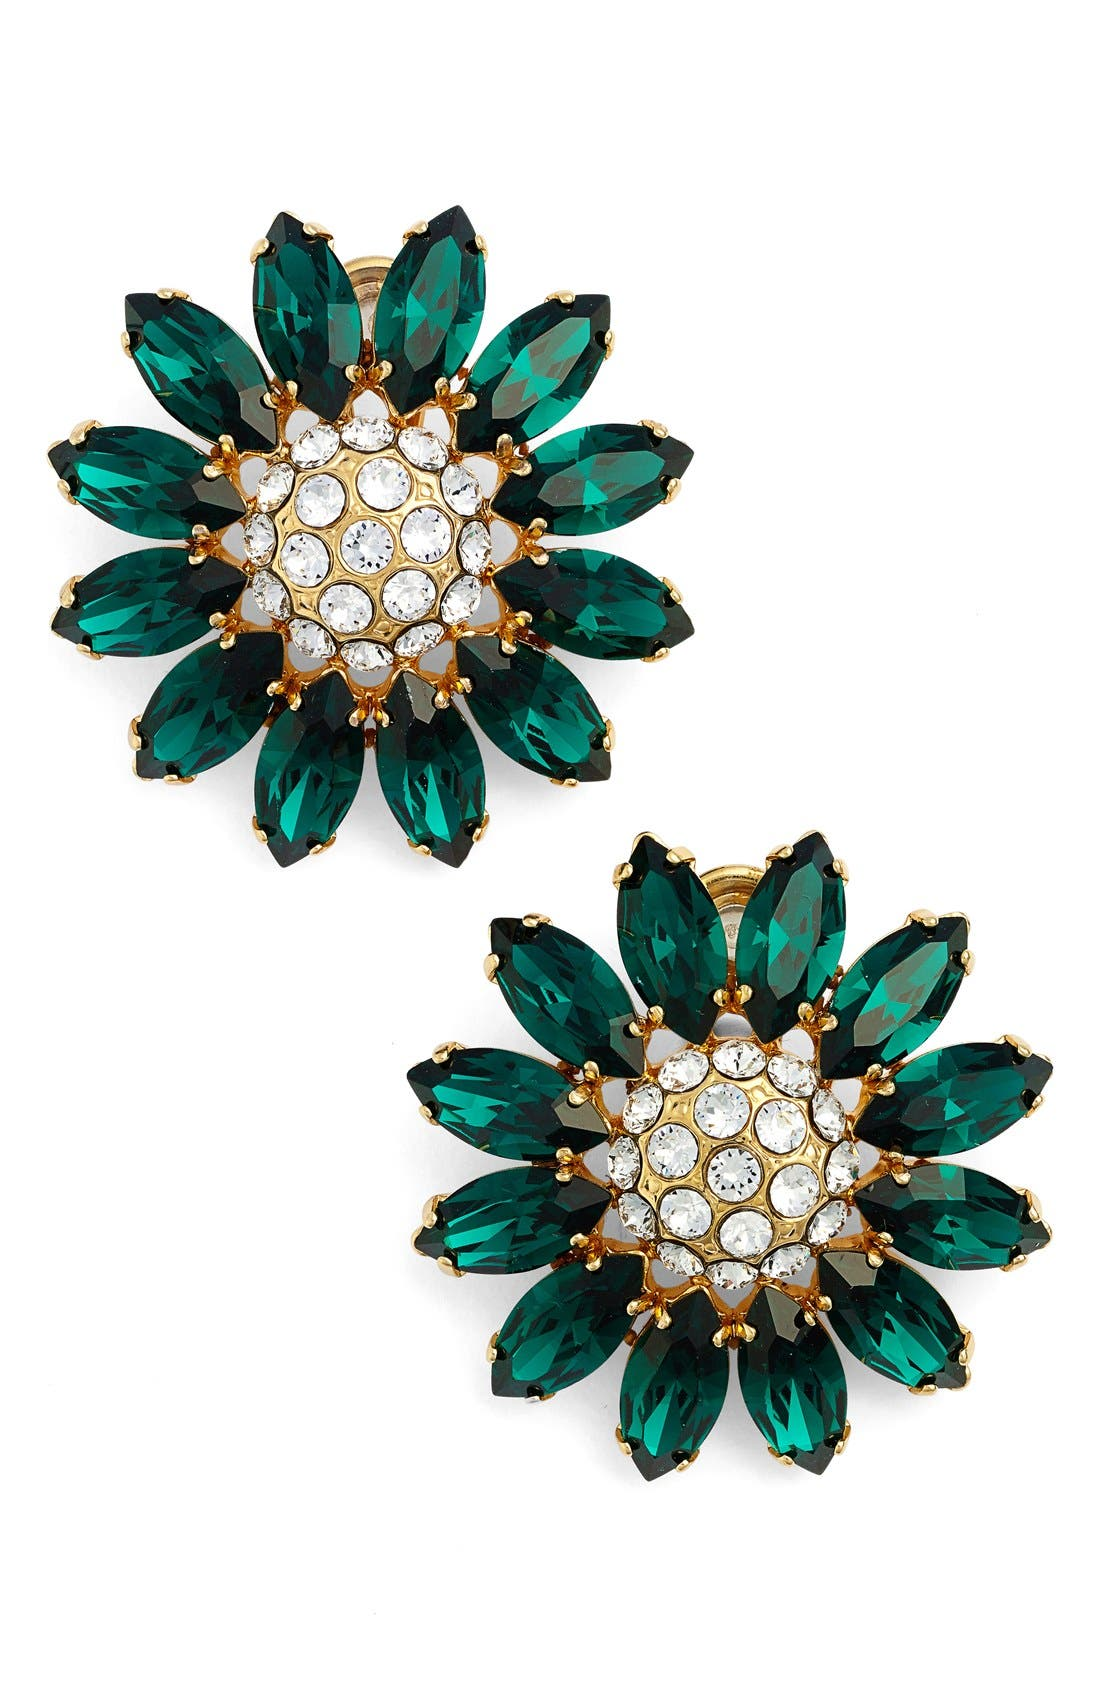 Alternate Image 1 Selected - Miu Miu 'Rebels' Crystal Floral Stud Earrings